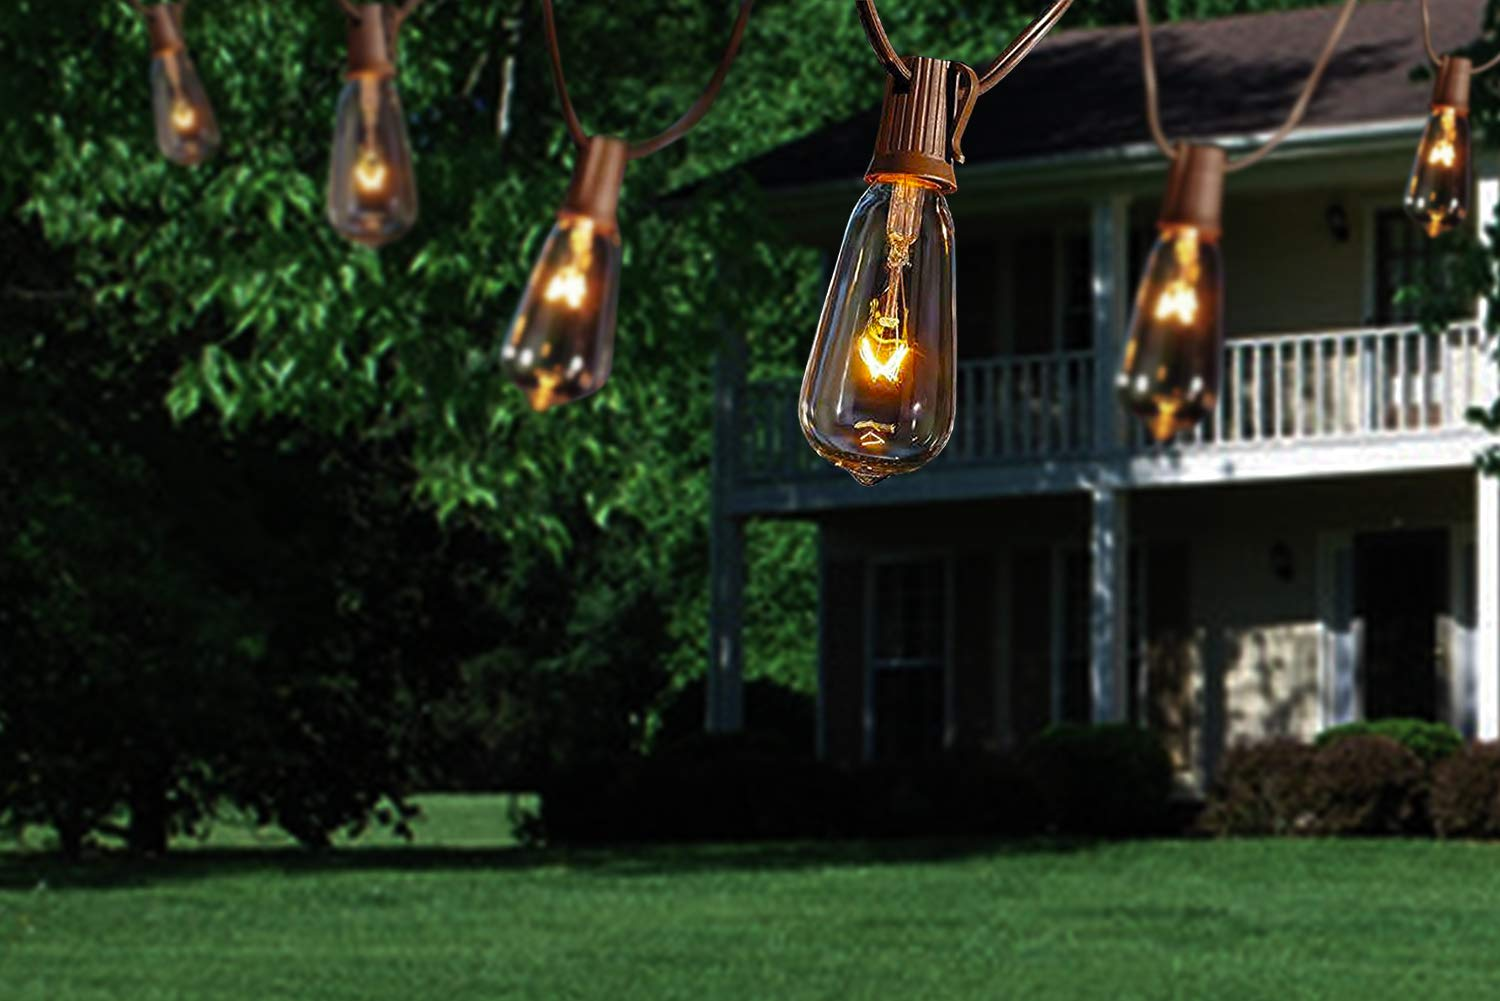 20Ft Outdoor Patio String Lights,ST40 String Lights with Clear edison Bulbs,UL listed set of 20 Glass Edison String Lights Garden/Backyard Party/Wedding Indoor String Lights(Plus 1 Extra Bulbs)-Brown